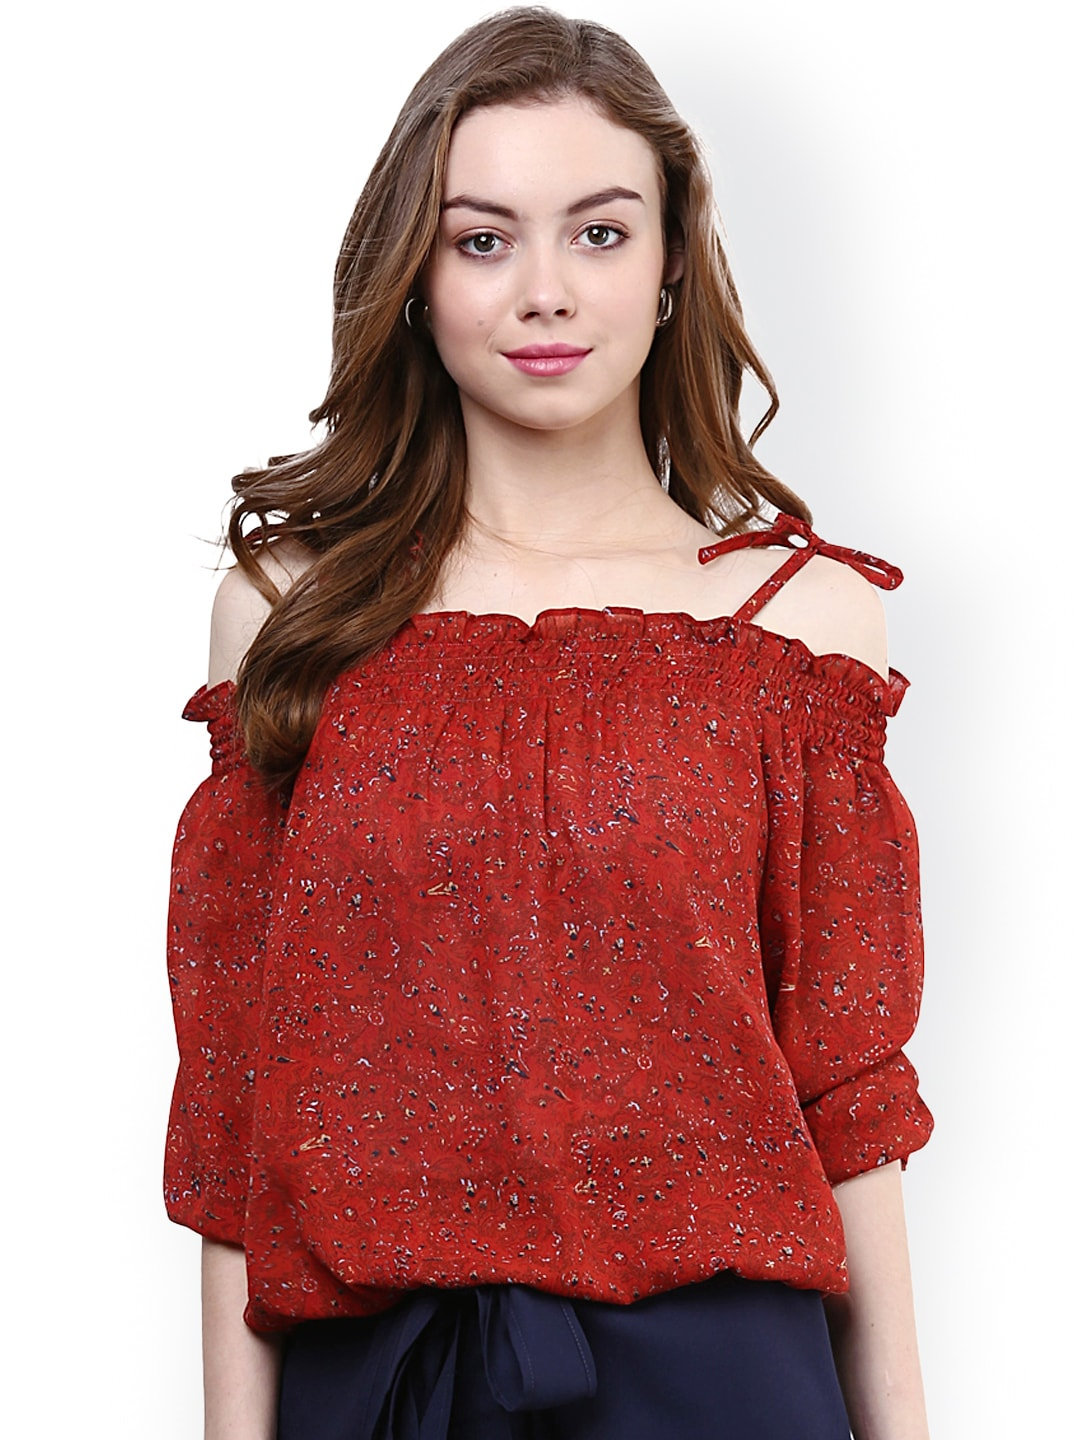 250bcd3162c Cold Shoulder Tops - Buy Cold Shoulder Tops for Women Online - Myntra